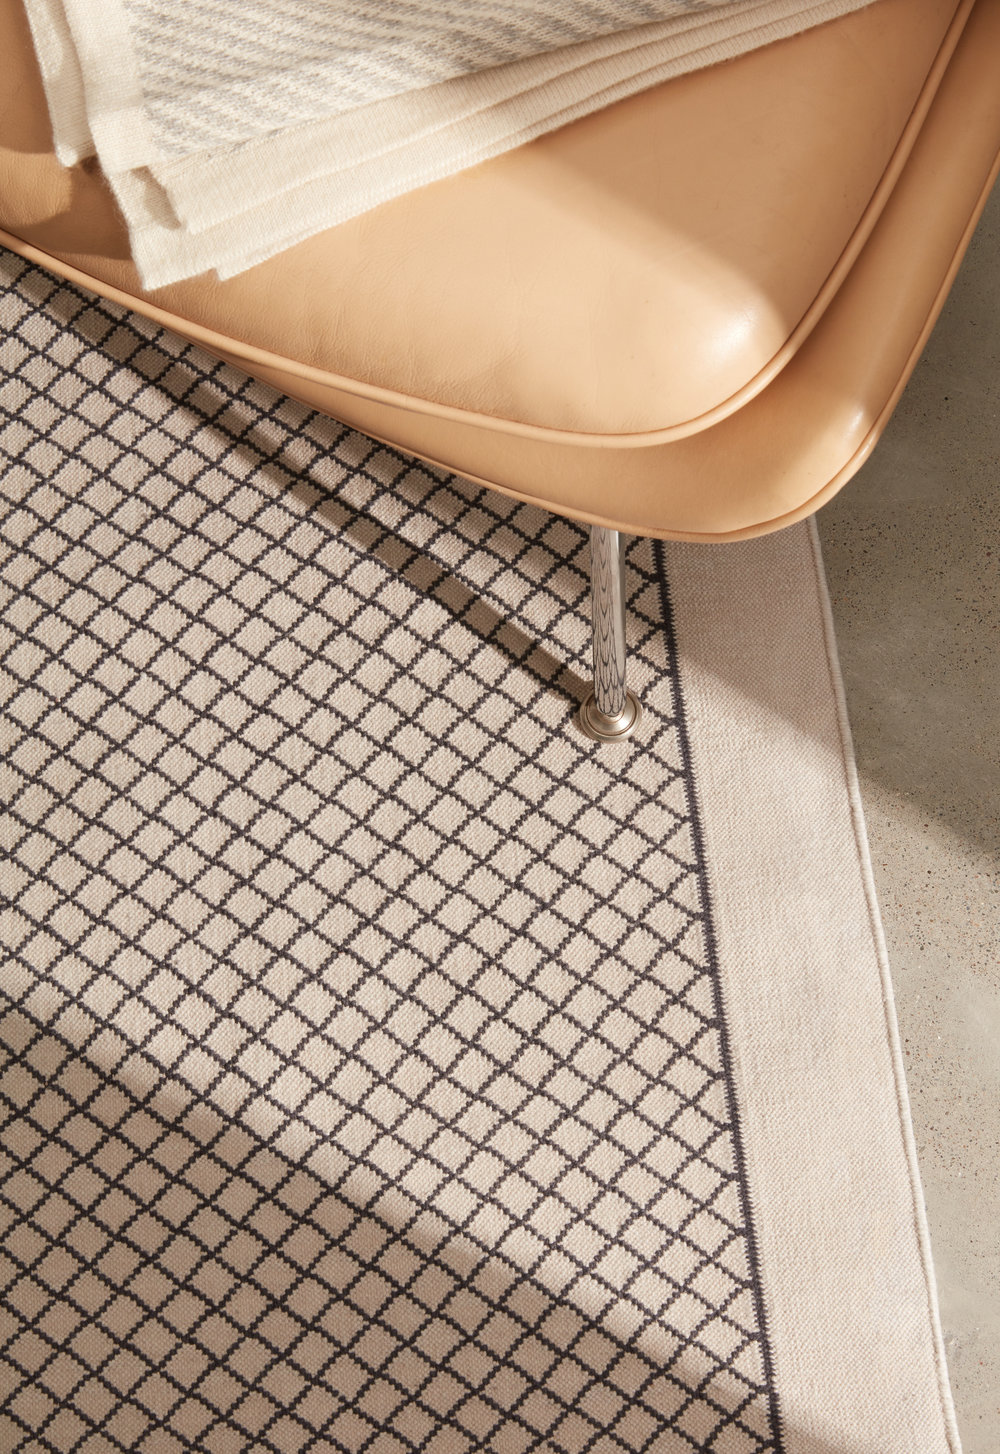 Fiske Area Rug shown in 100% Cruelty-Free Merino in Breath and Ink in 5x7 size.